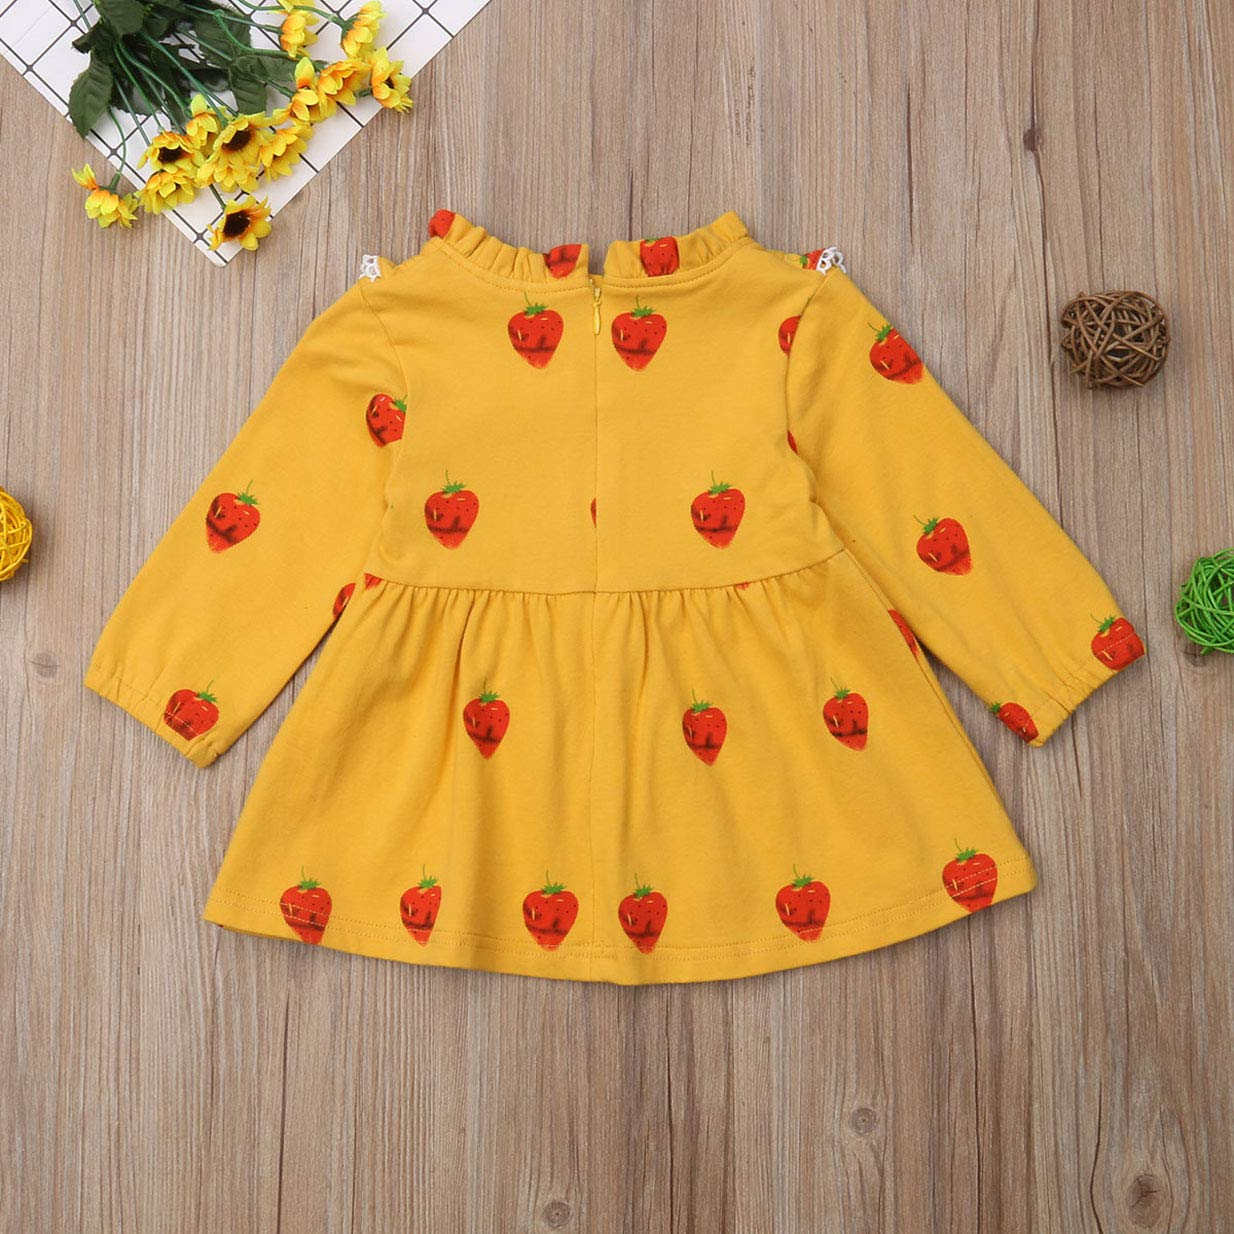 FEORJGP Toddler Baby Girl Long Sleeve Ruffle Strawberry Dress Casual Clothes